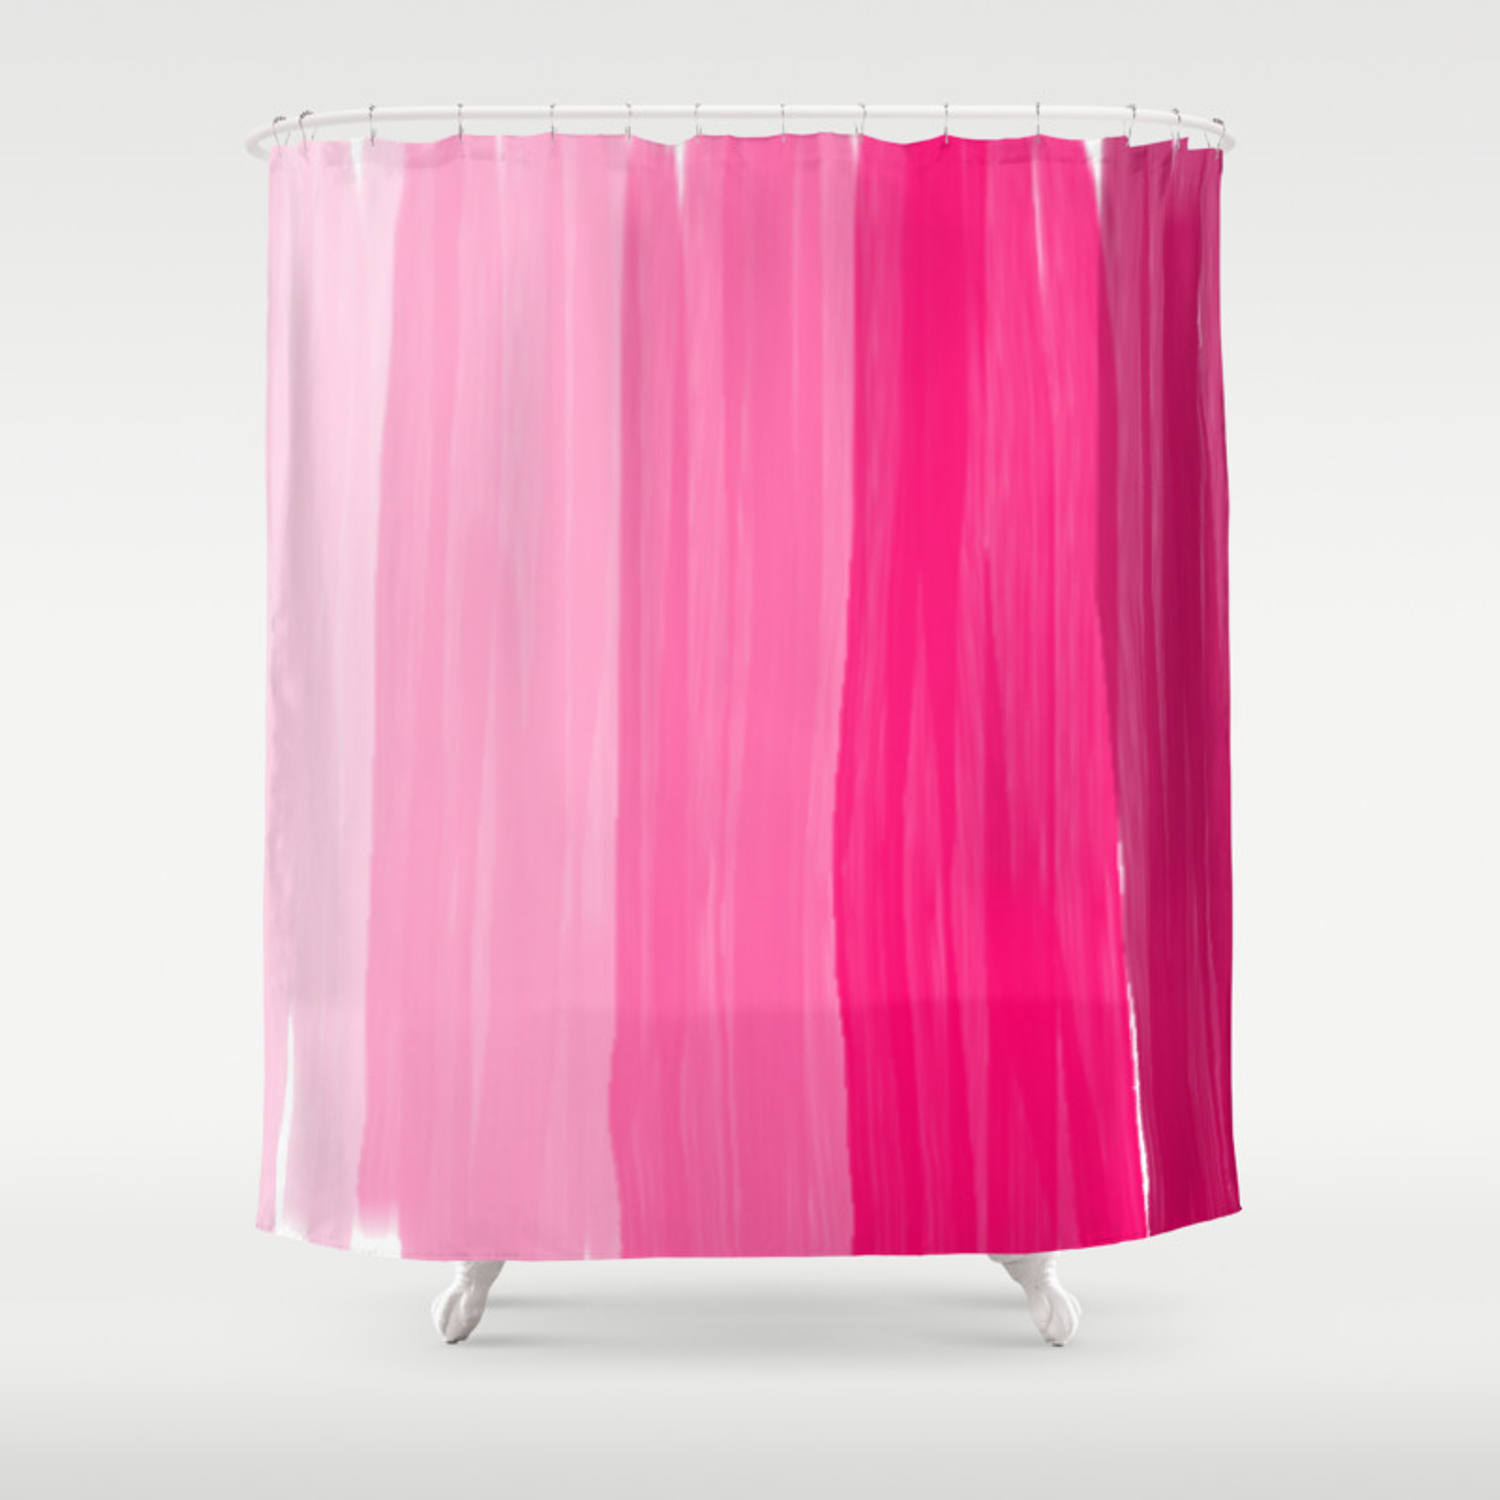 Pink Stripes Shower Curtain